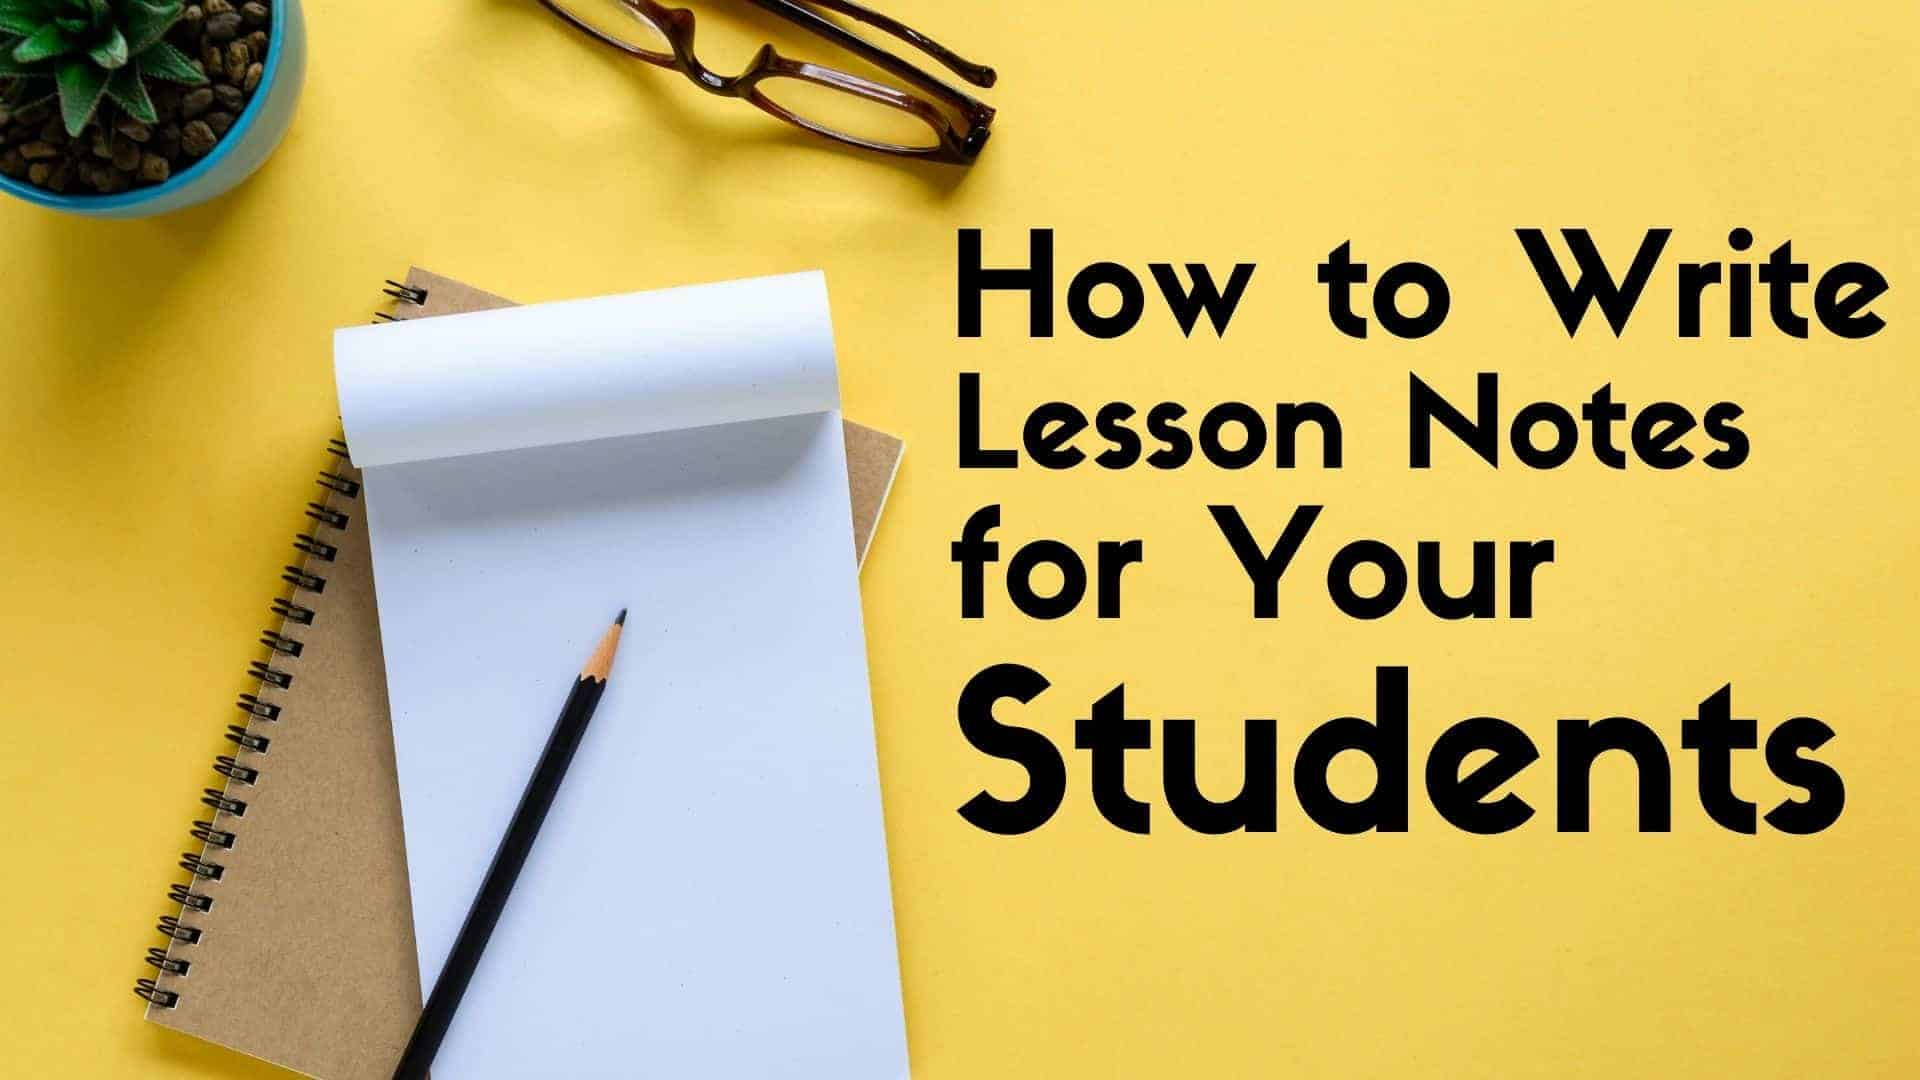 How to Write Lesson Notes for Your Students - How to Write Lesson Notes for Your Students